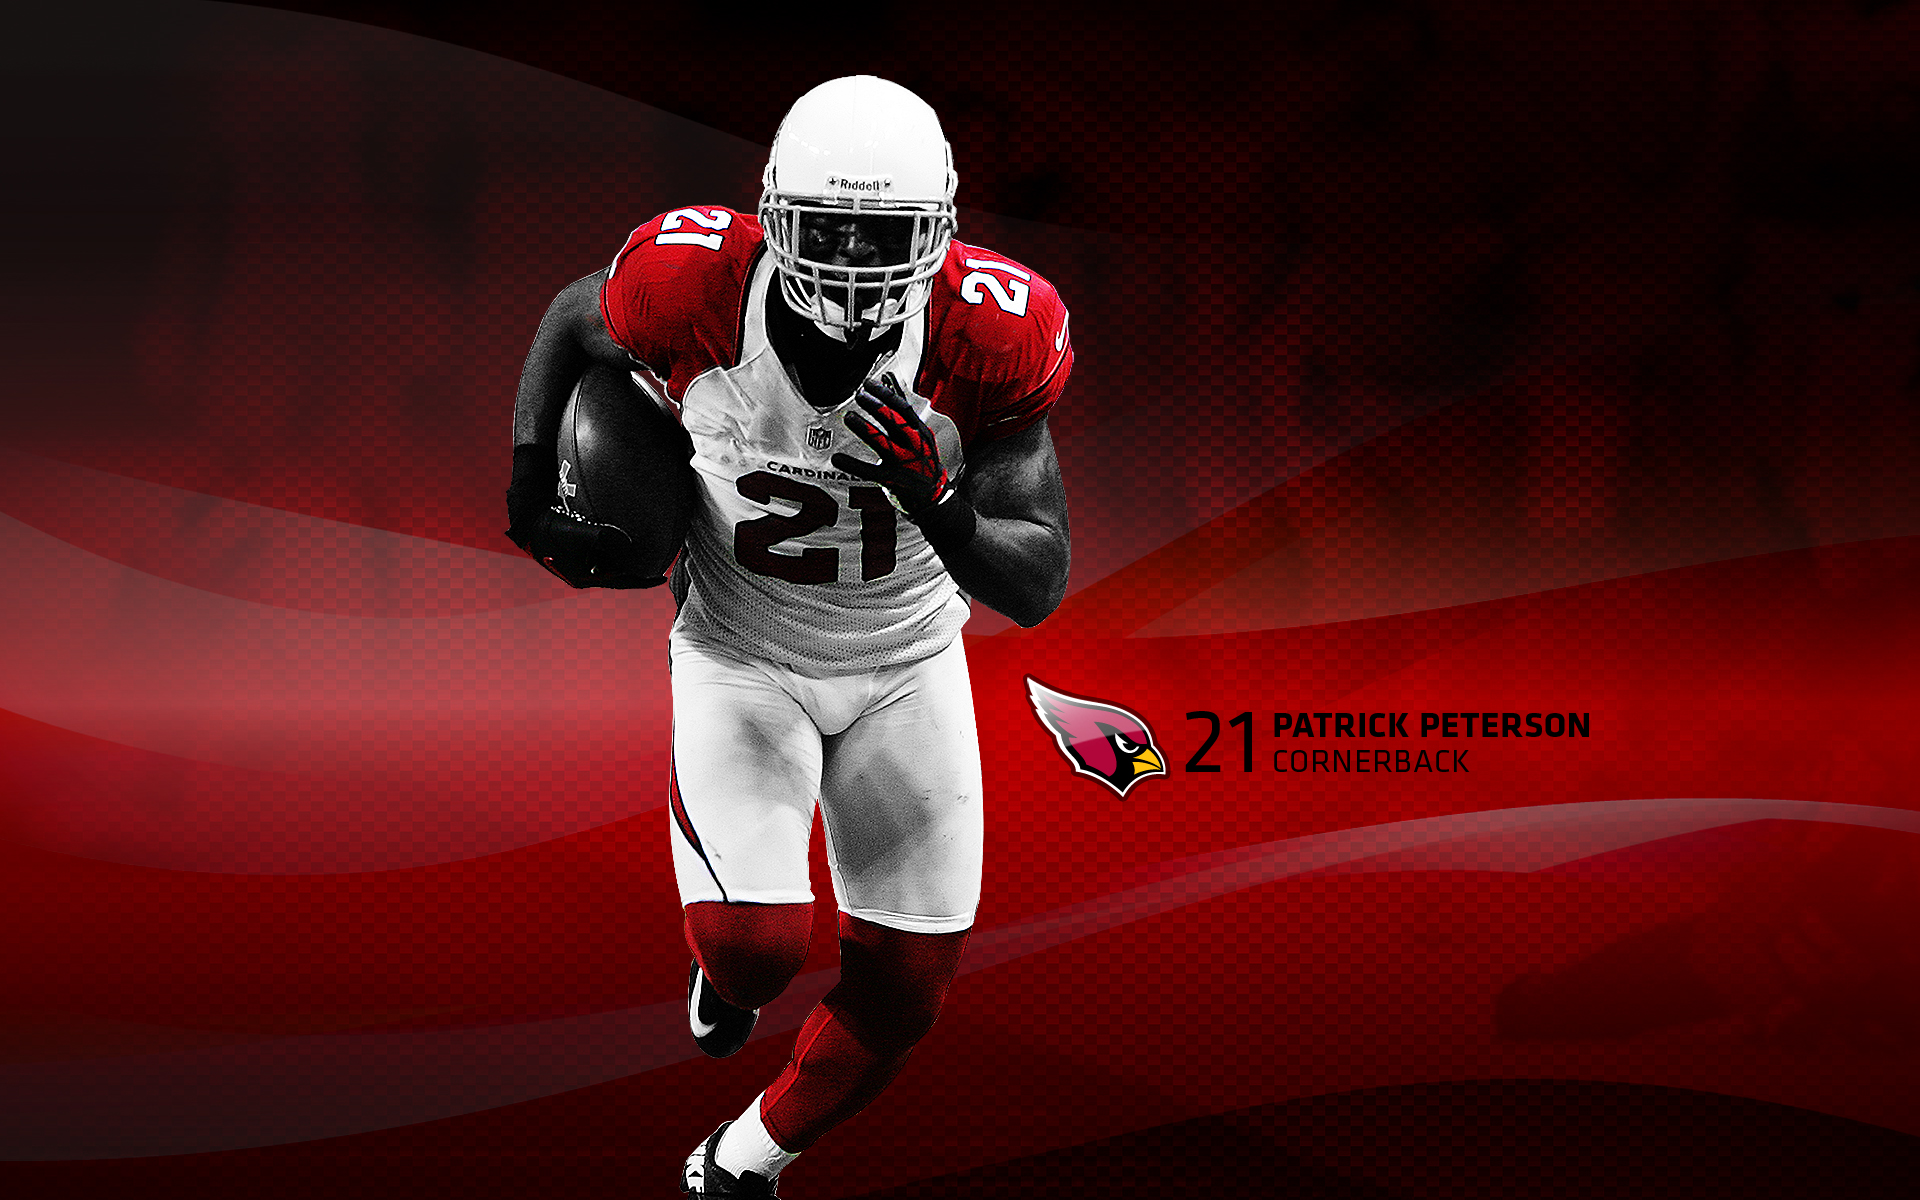 43 louisville cardinals wallpaper hd on wallpapersafari - Arizona cardinals screensaver free ...